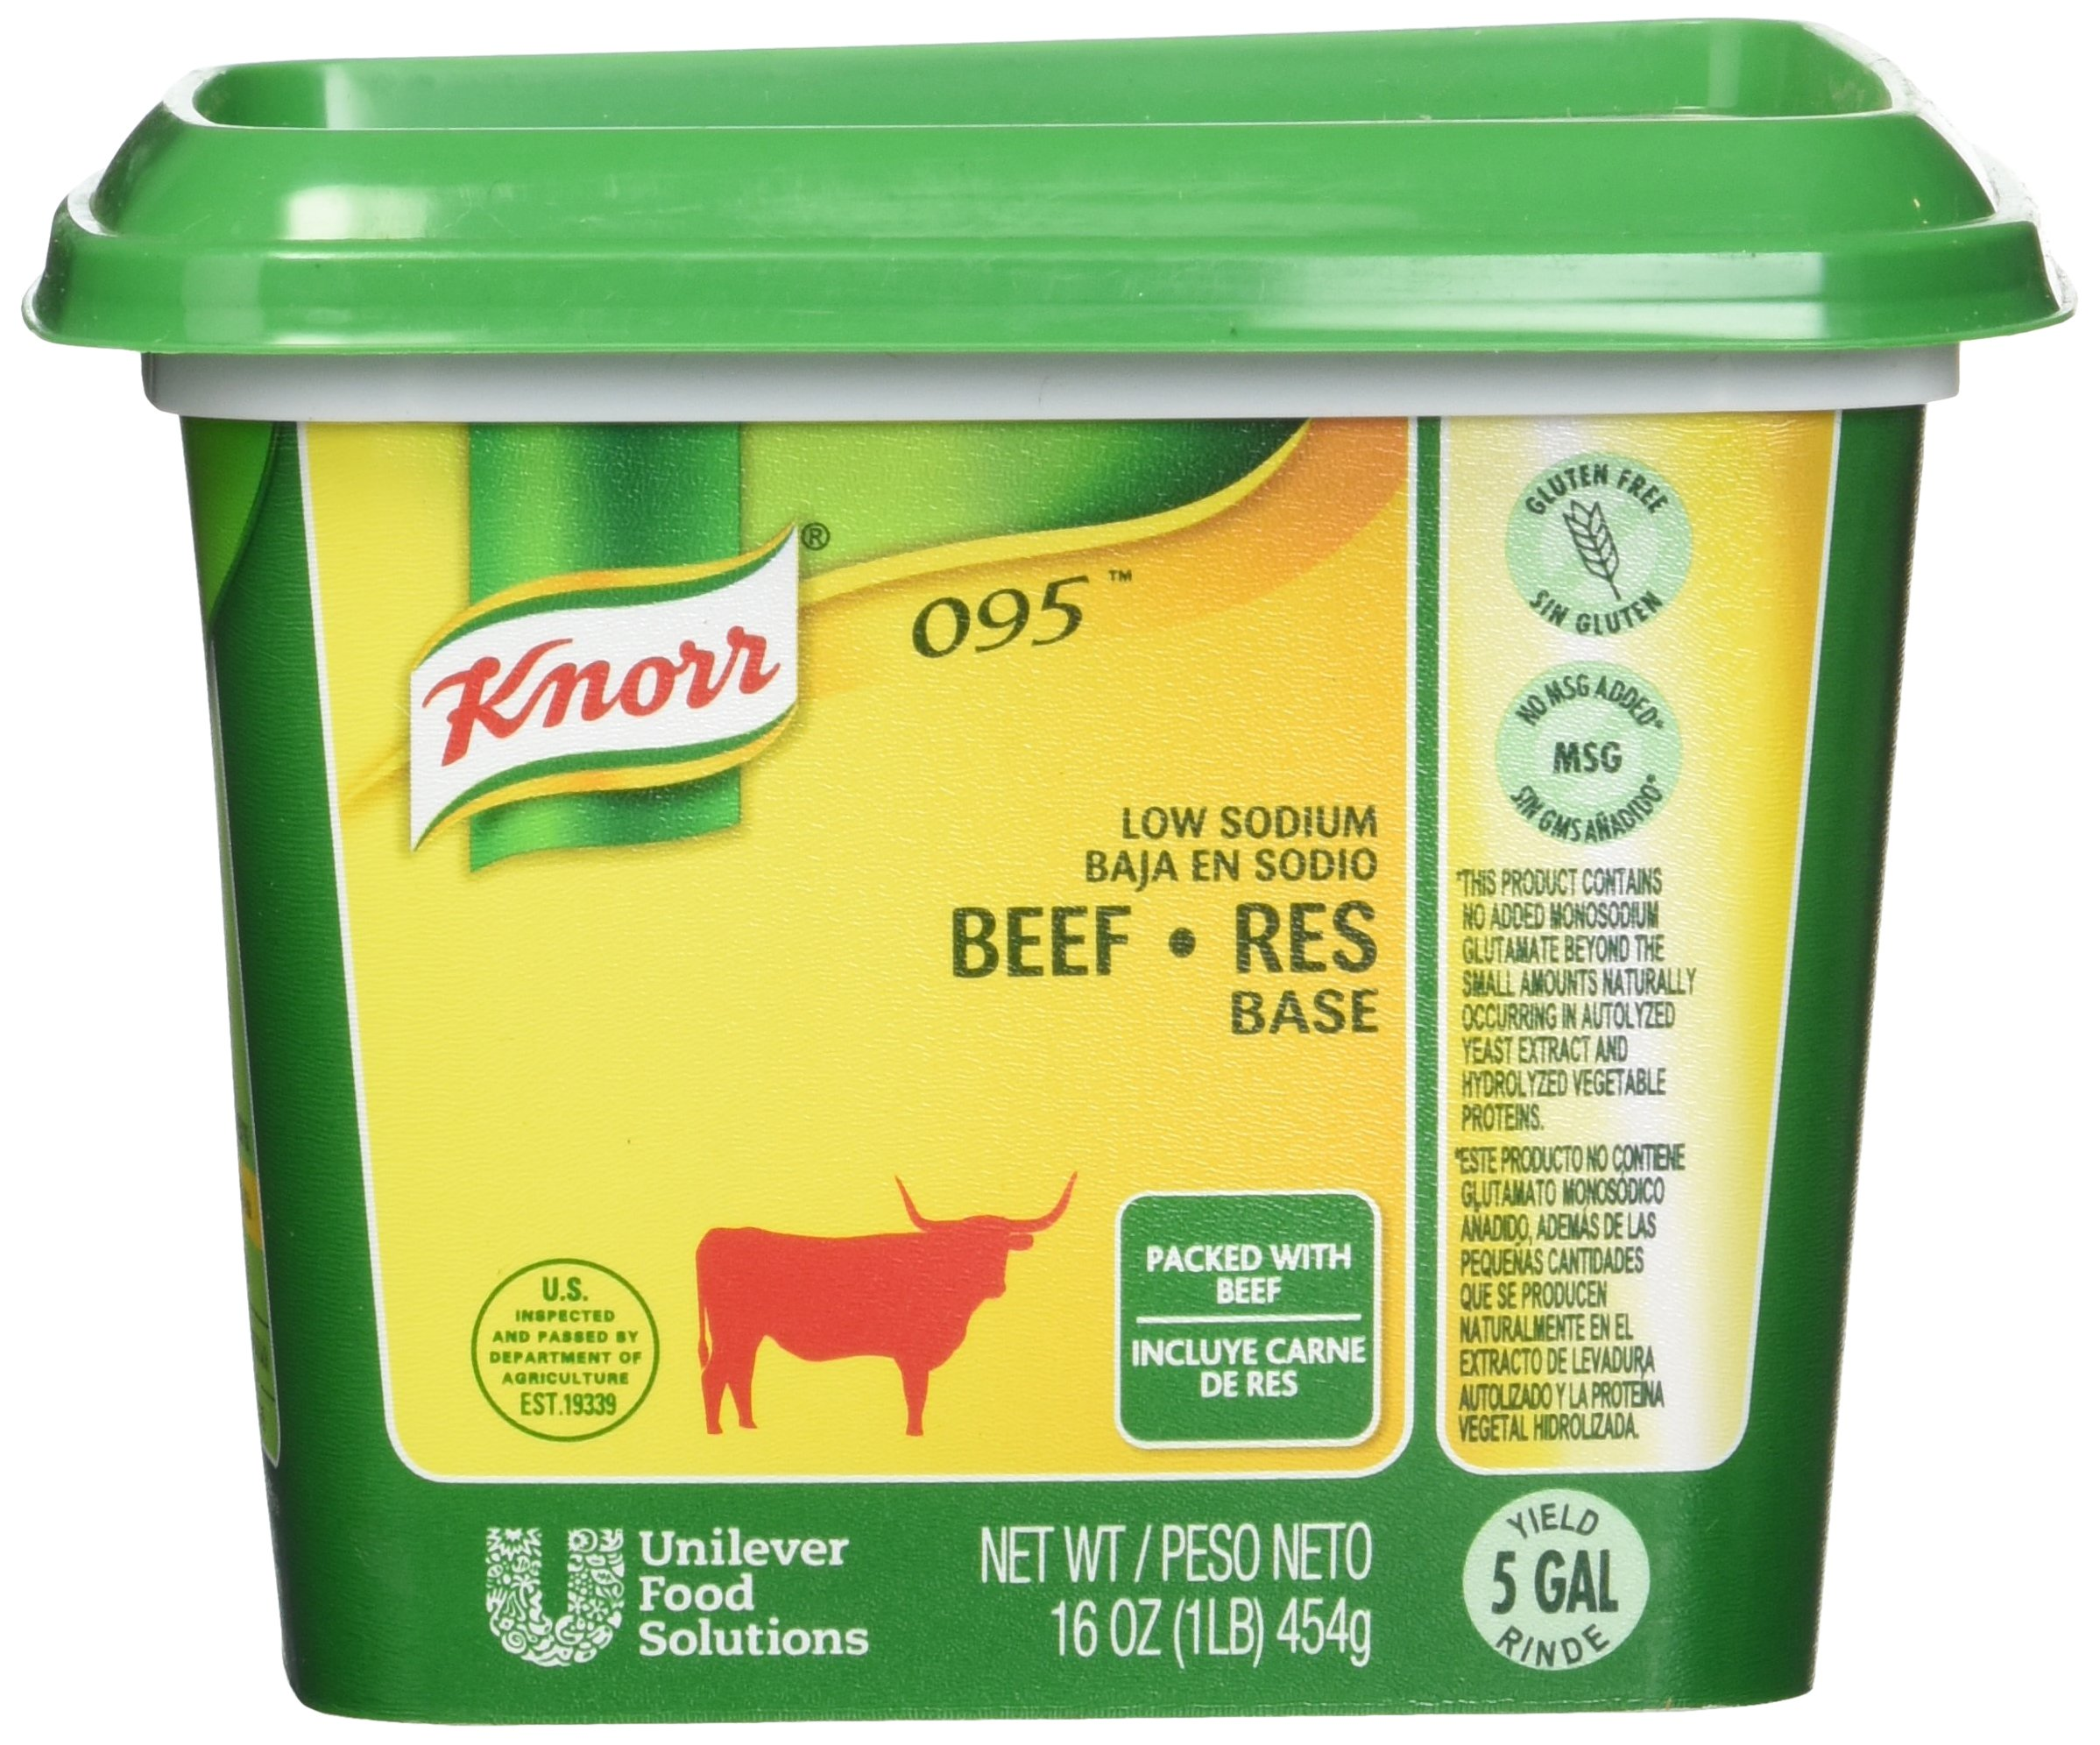 Knorr 095 Base Beef Low Sodium 1 pound 12 count